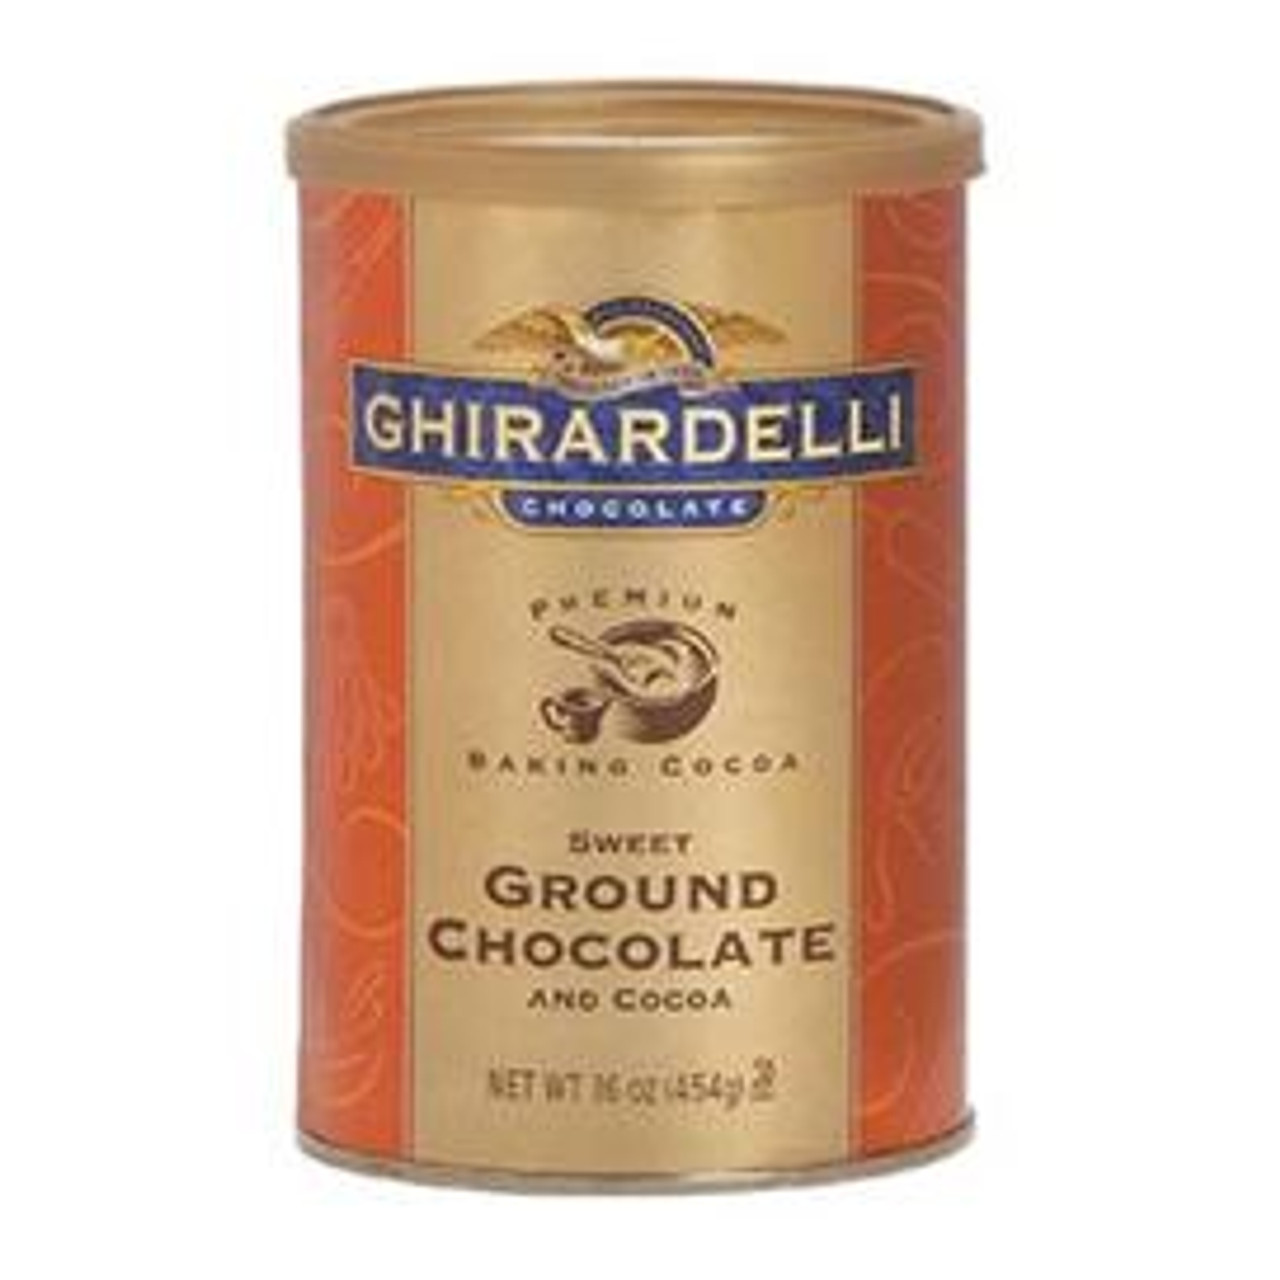 Sweet Ground Chocolate & Cocoa